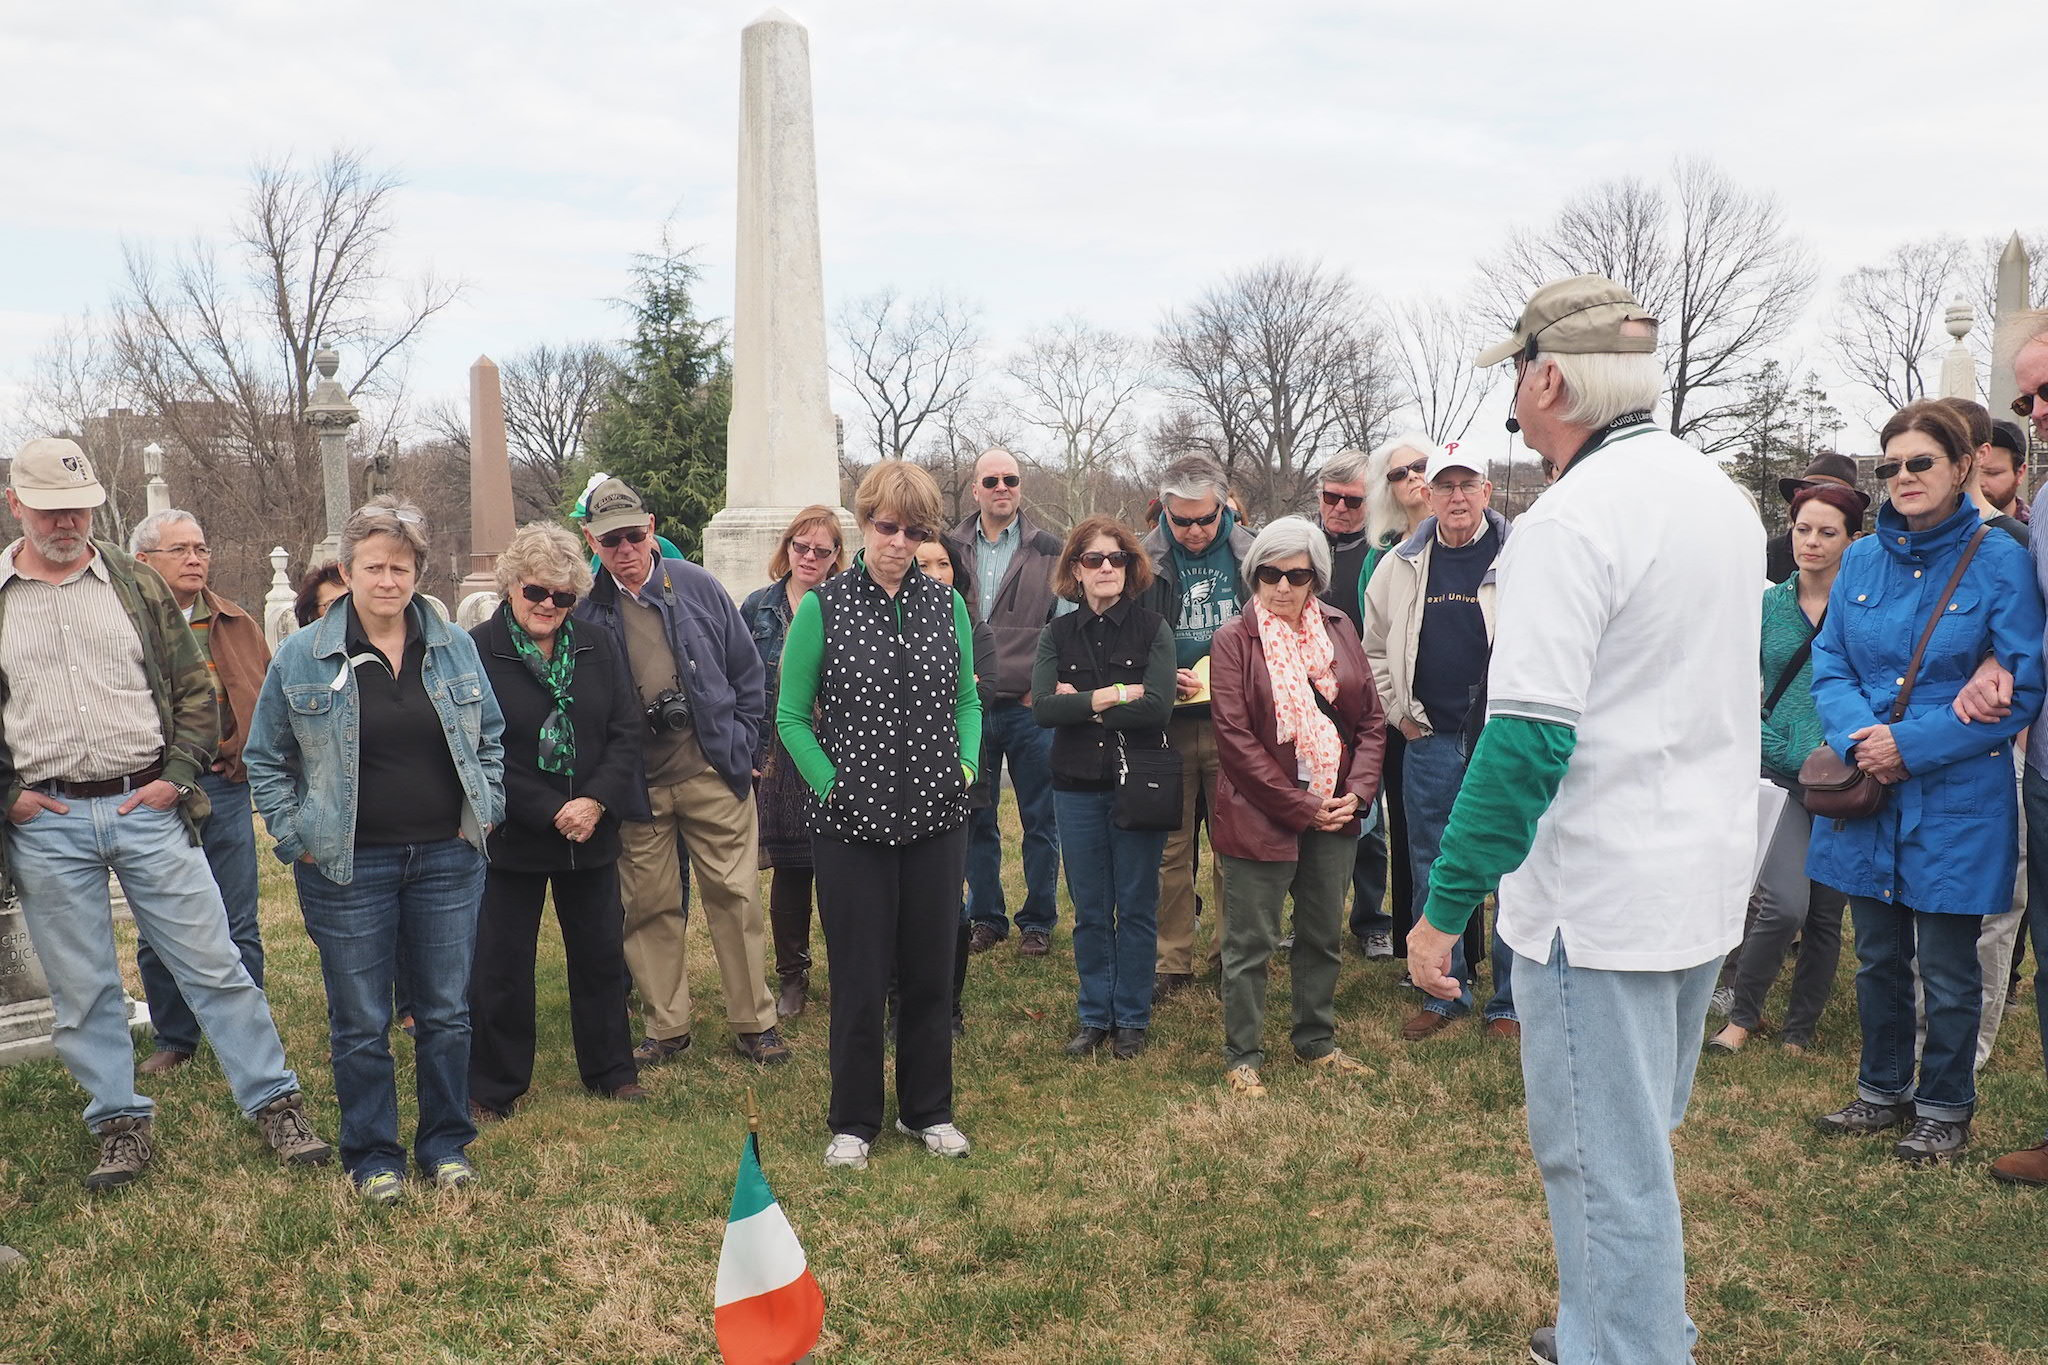 Laurel Hill Cemetery St. Patrick's Day event